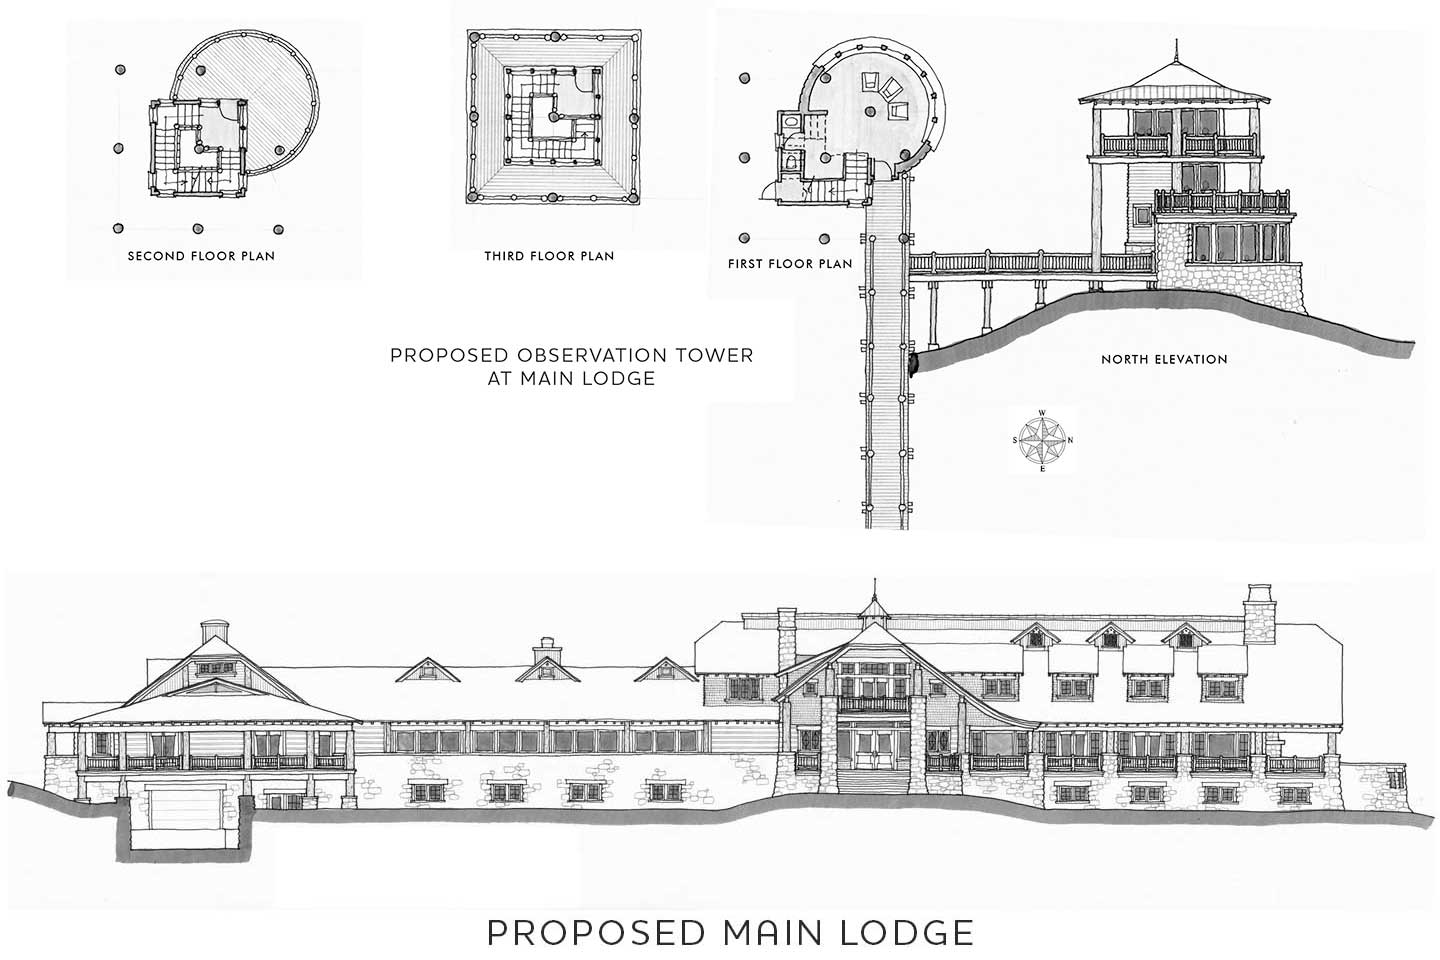 Proposed plans for lodge and tower